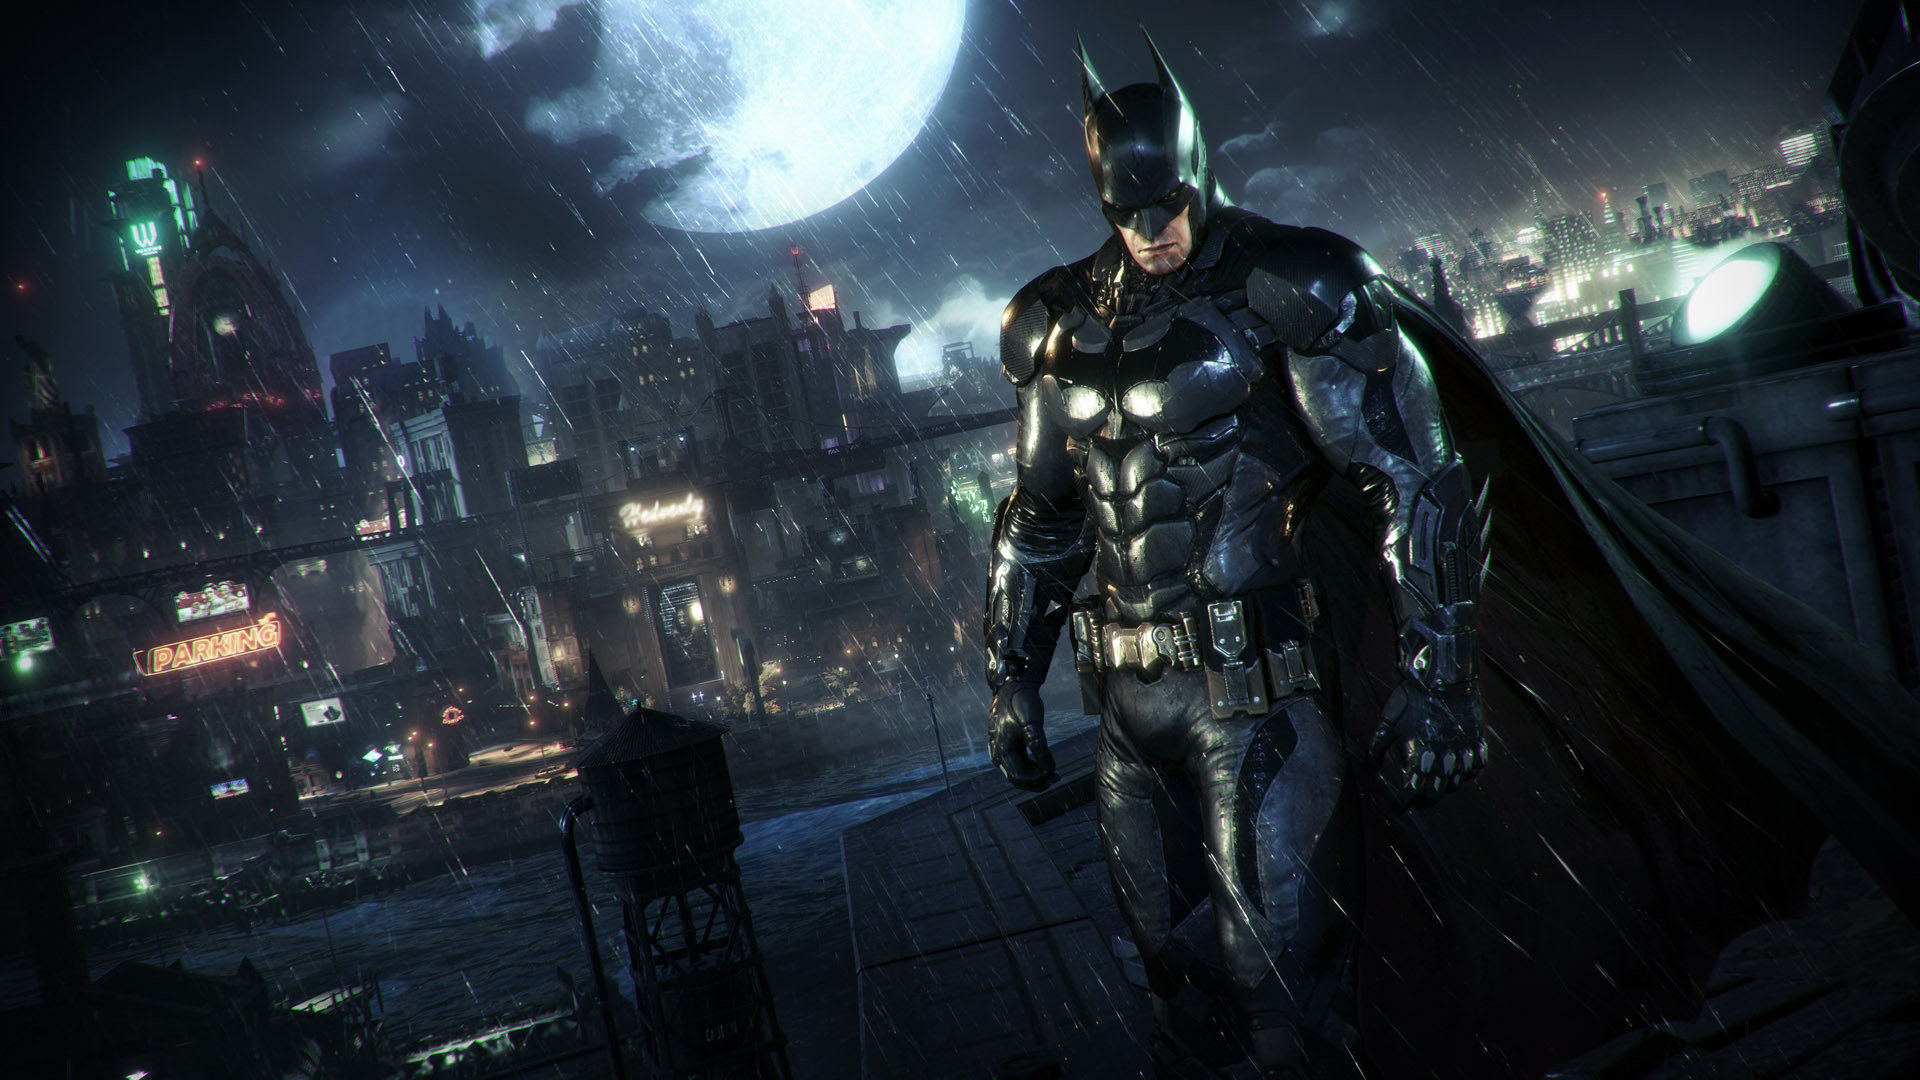 batman arkham knight wallpapers 1920x1080 full hd 1080p desktop